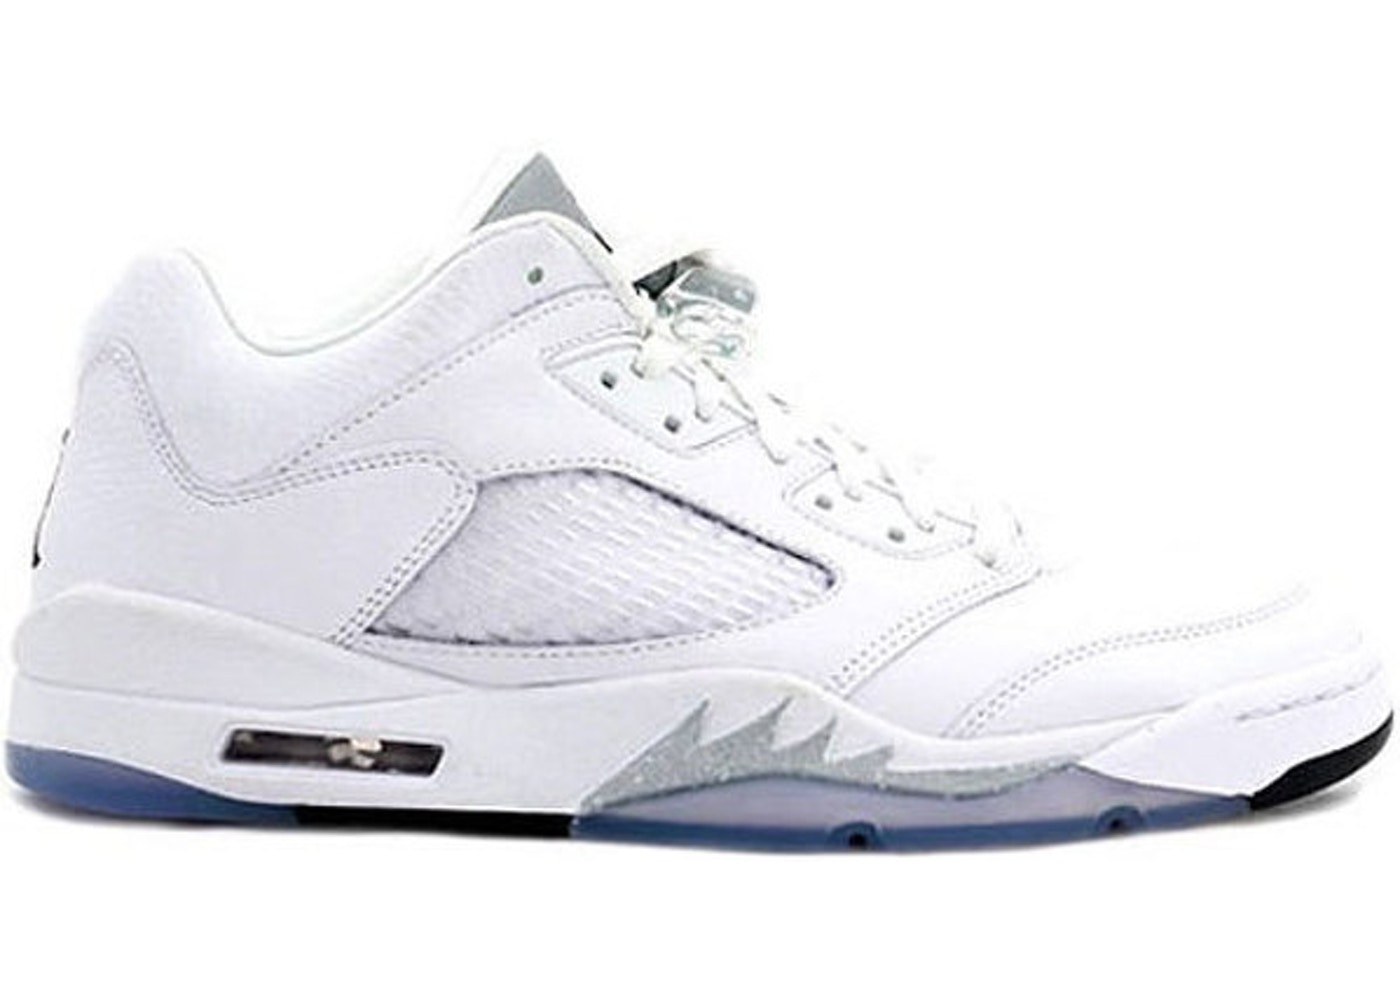 f4799f7d8e64 Jordan 5 Retro Low Metallic White (W) - 314337-101